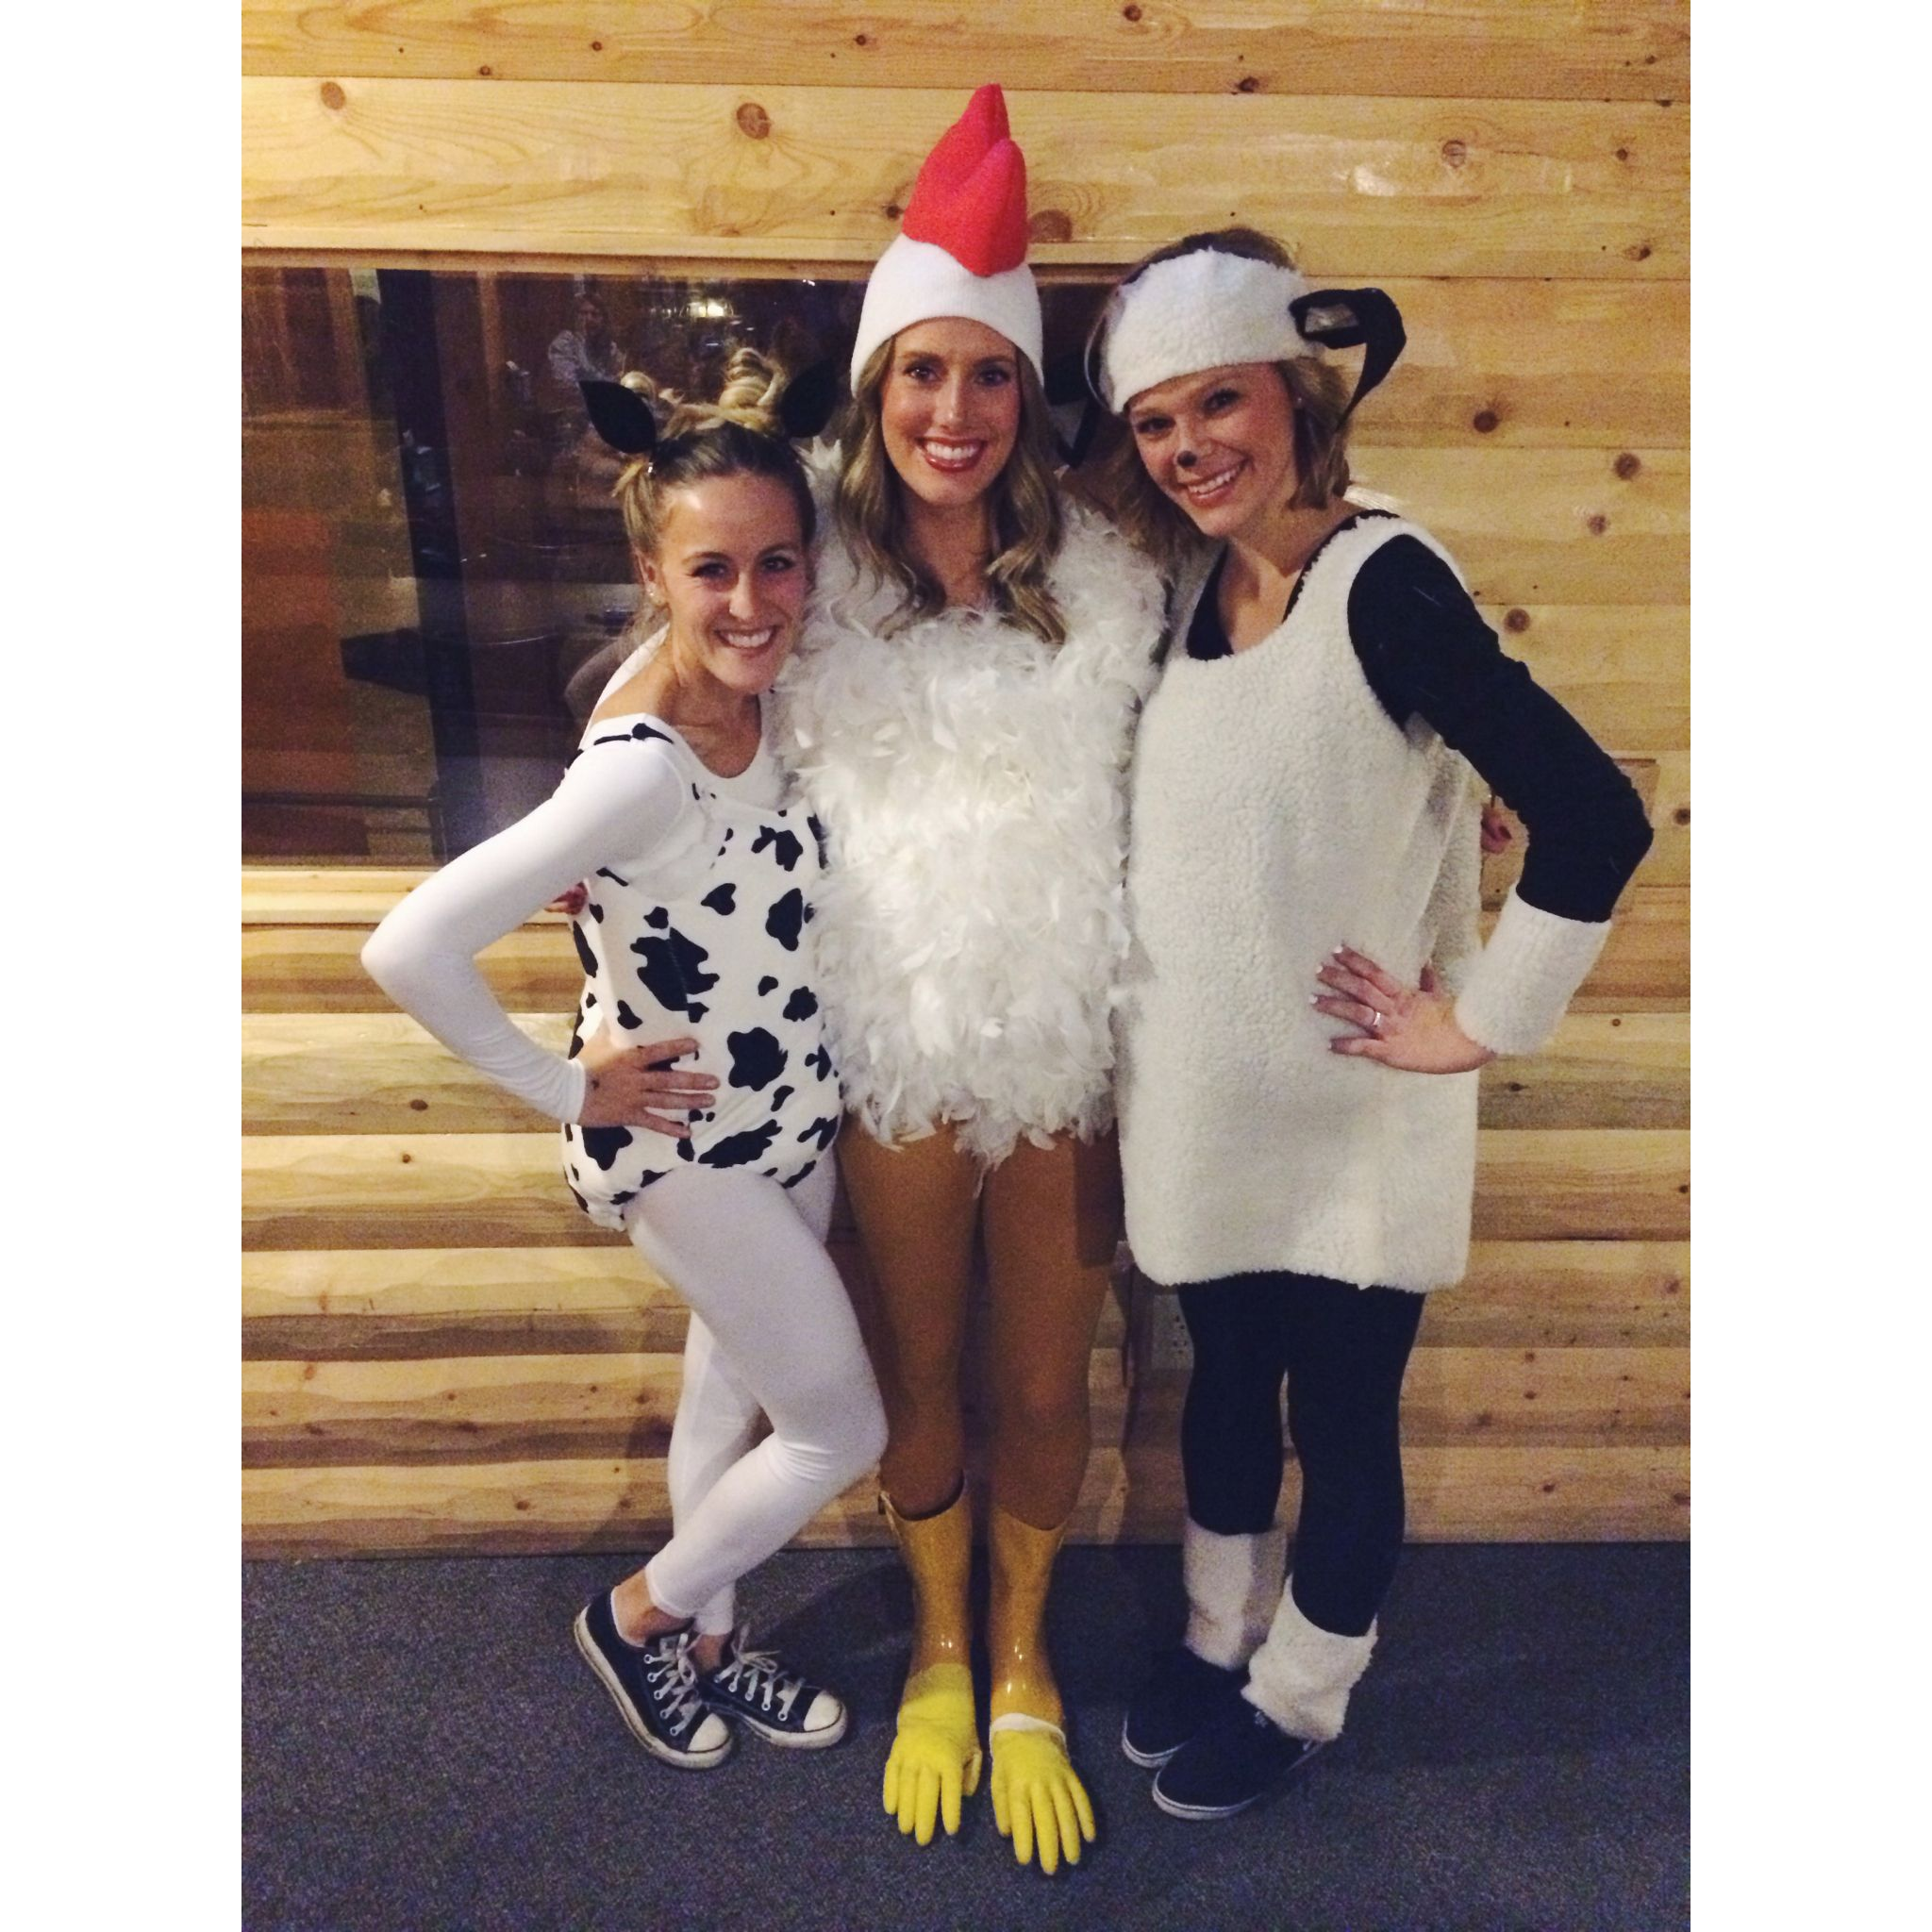 478cda2bf7 Old McDonald's Farm: Cow Costume, Chicken Costume, Sheep Costume || Cute  Homemade Halloween Costumes {@ whitnelson Instagram}